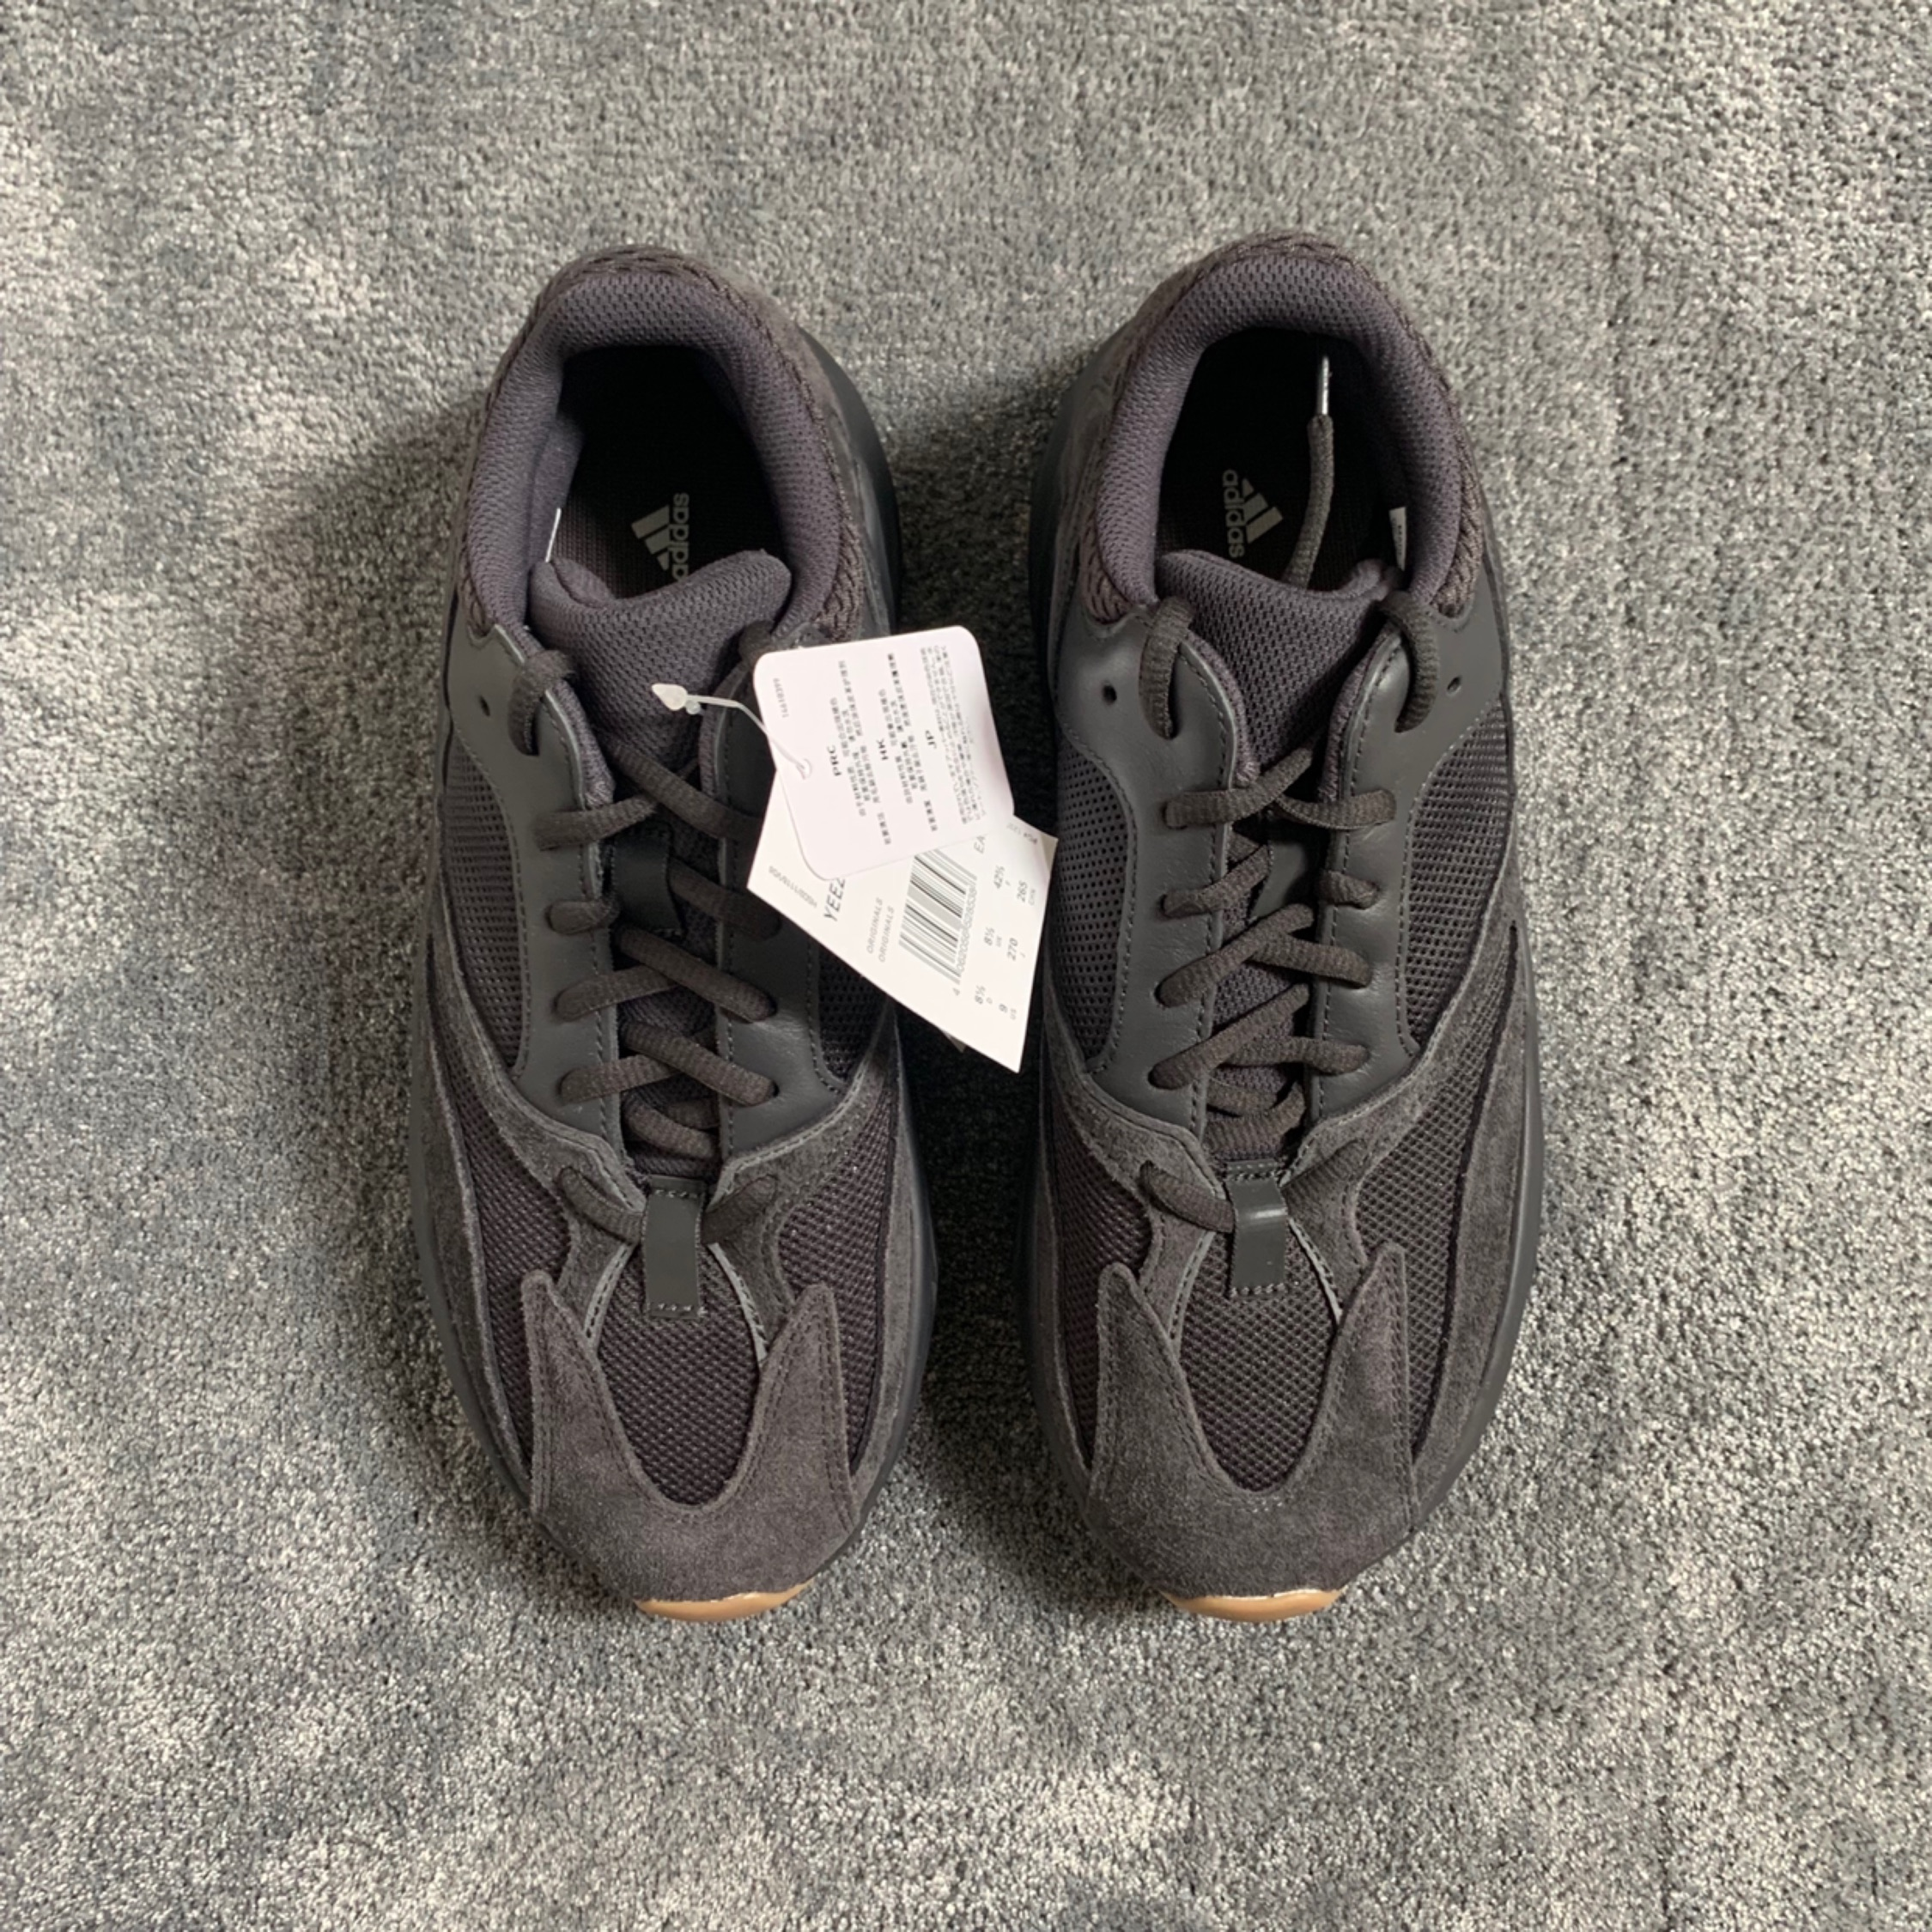 separation shoes 0217a b5384 Yeezy Boost 700 Utility Black